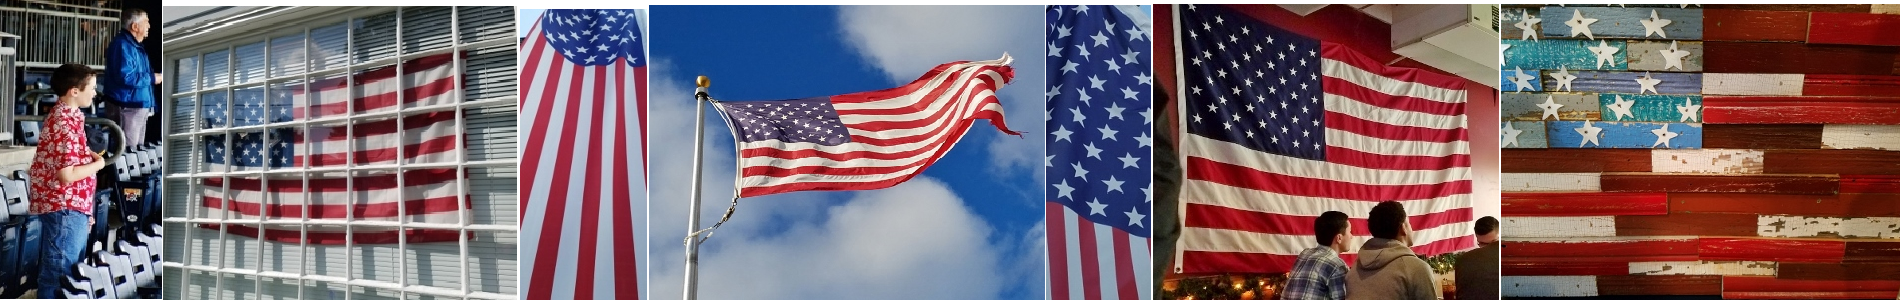 flag for 4th